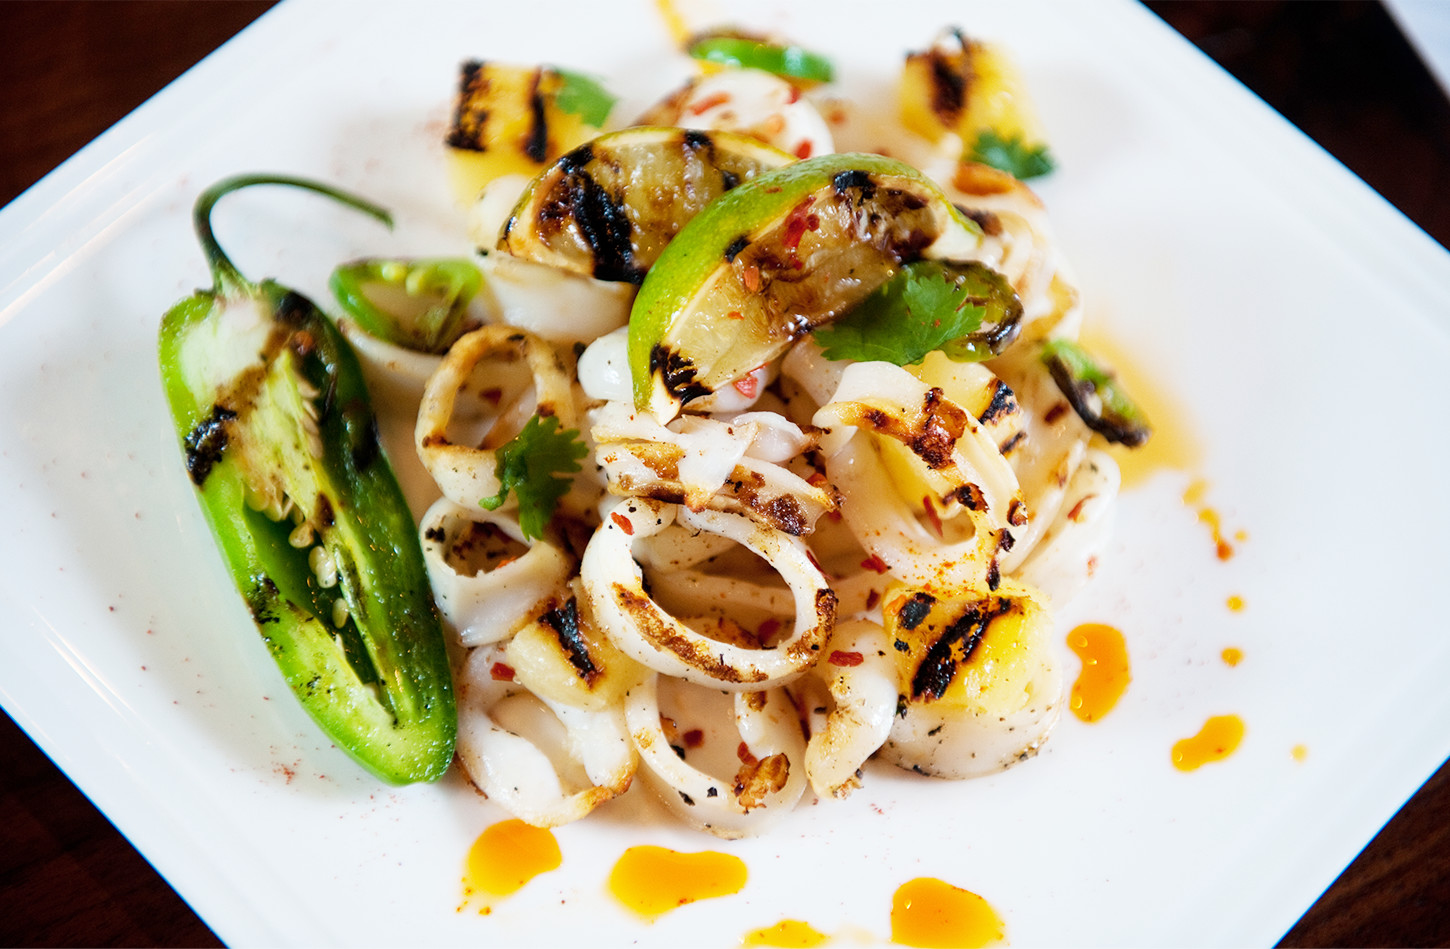 Recipe: Grilled Squid with Pineapple and Roasted Garlic